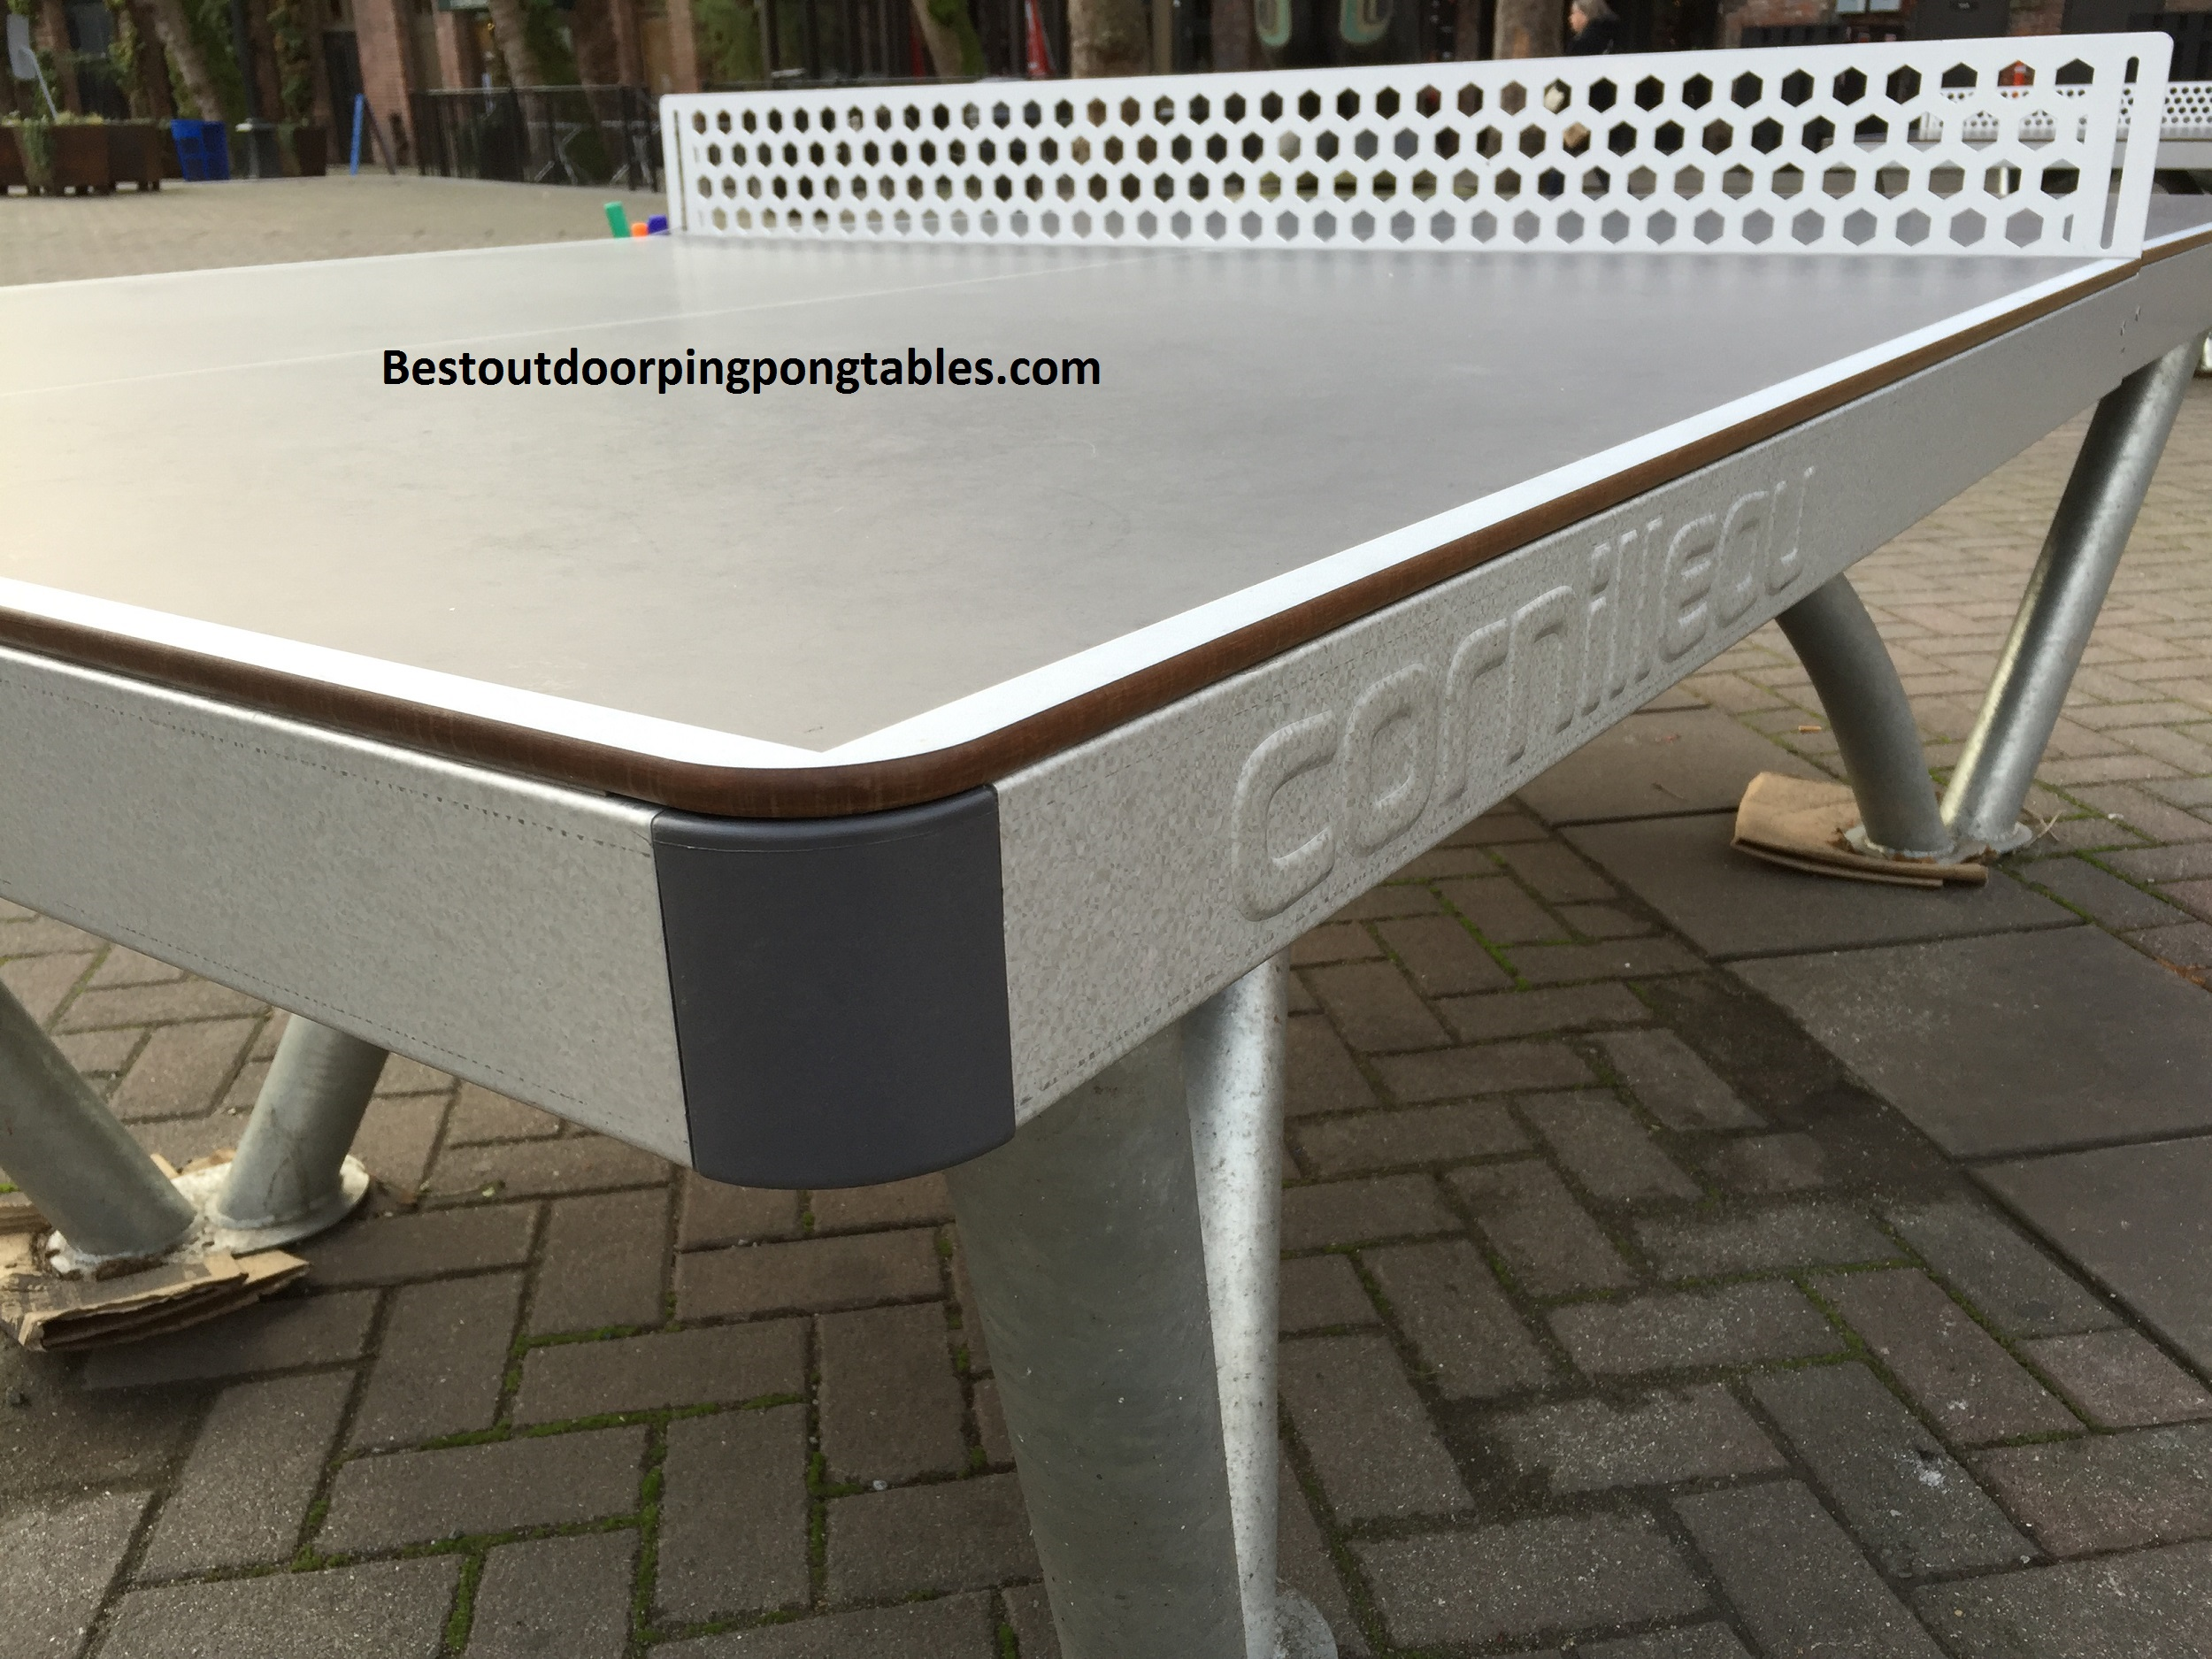 Killerspin Myt5 Table Tennis Table Cornilleau Park Outdoor - Best Outdoor Ping Pong Tables